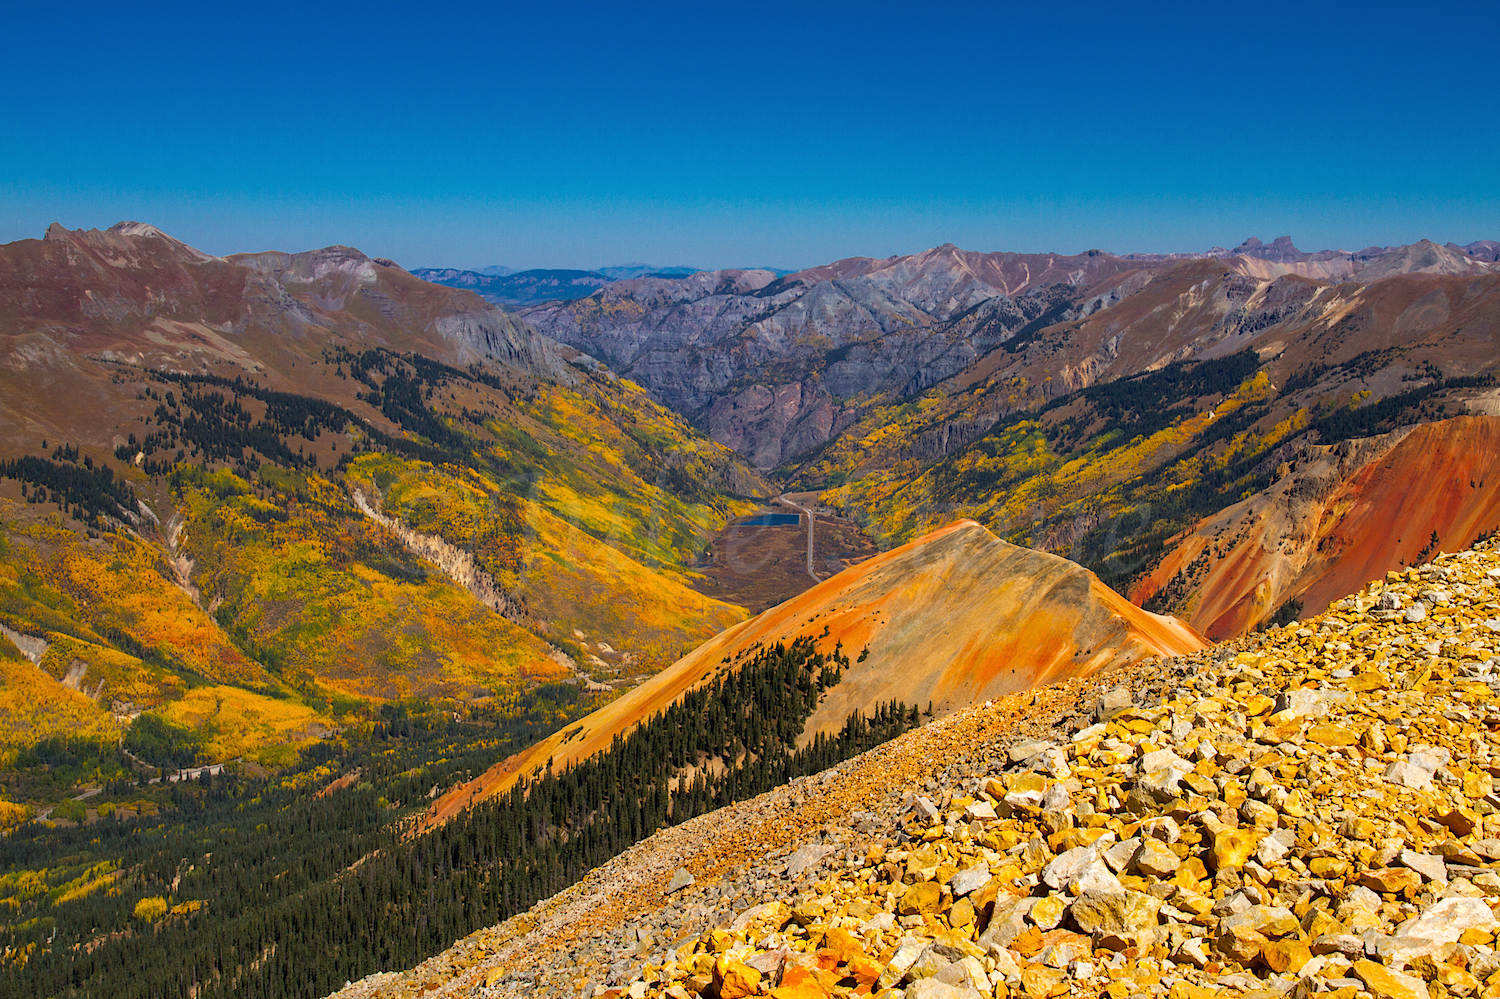 Red Mountain #3, Image #1291